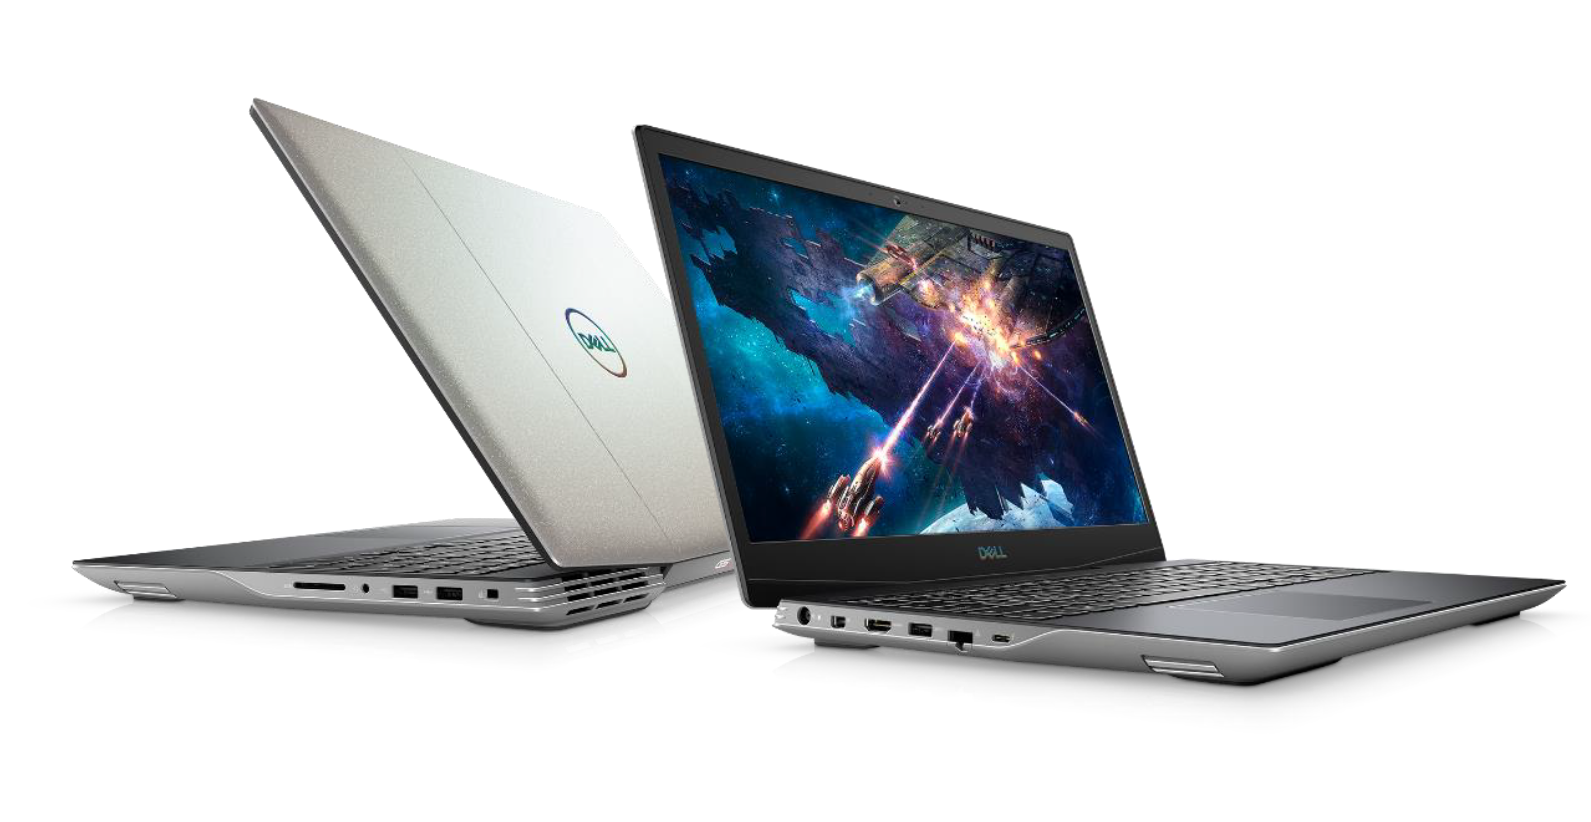 dell-g5-15-se-laptop-official-–-up-to-amd-ryzen-9-4900h-8-core-cpu,-radeon-rx-5600m-graphics-&-1080p-144-hz-display